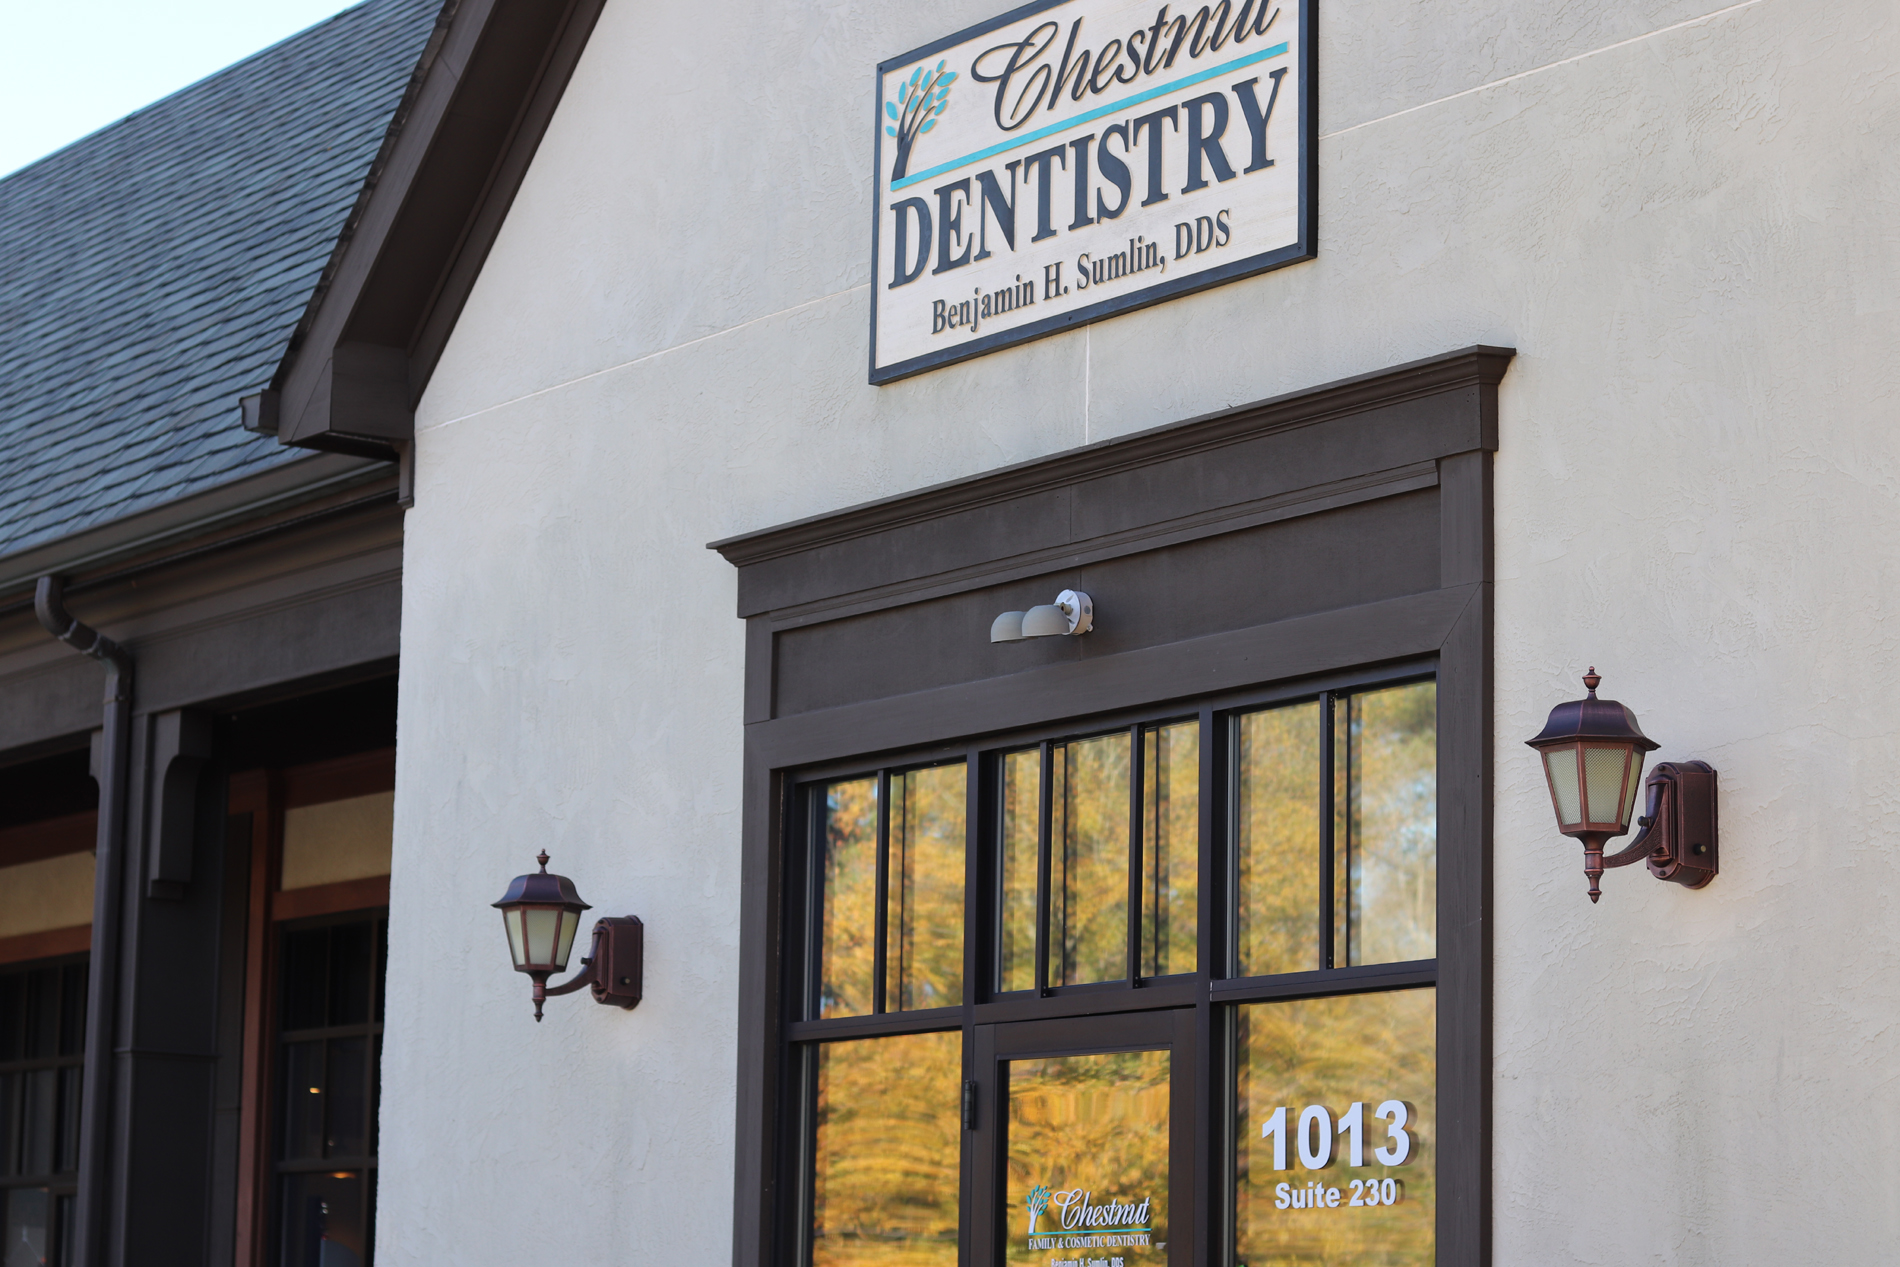 Chestnut Dentistry Office